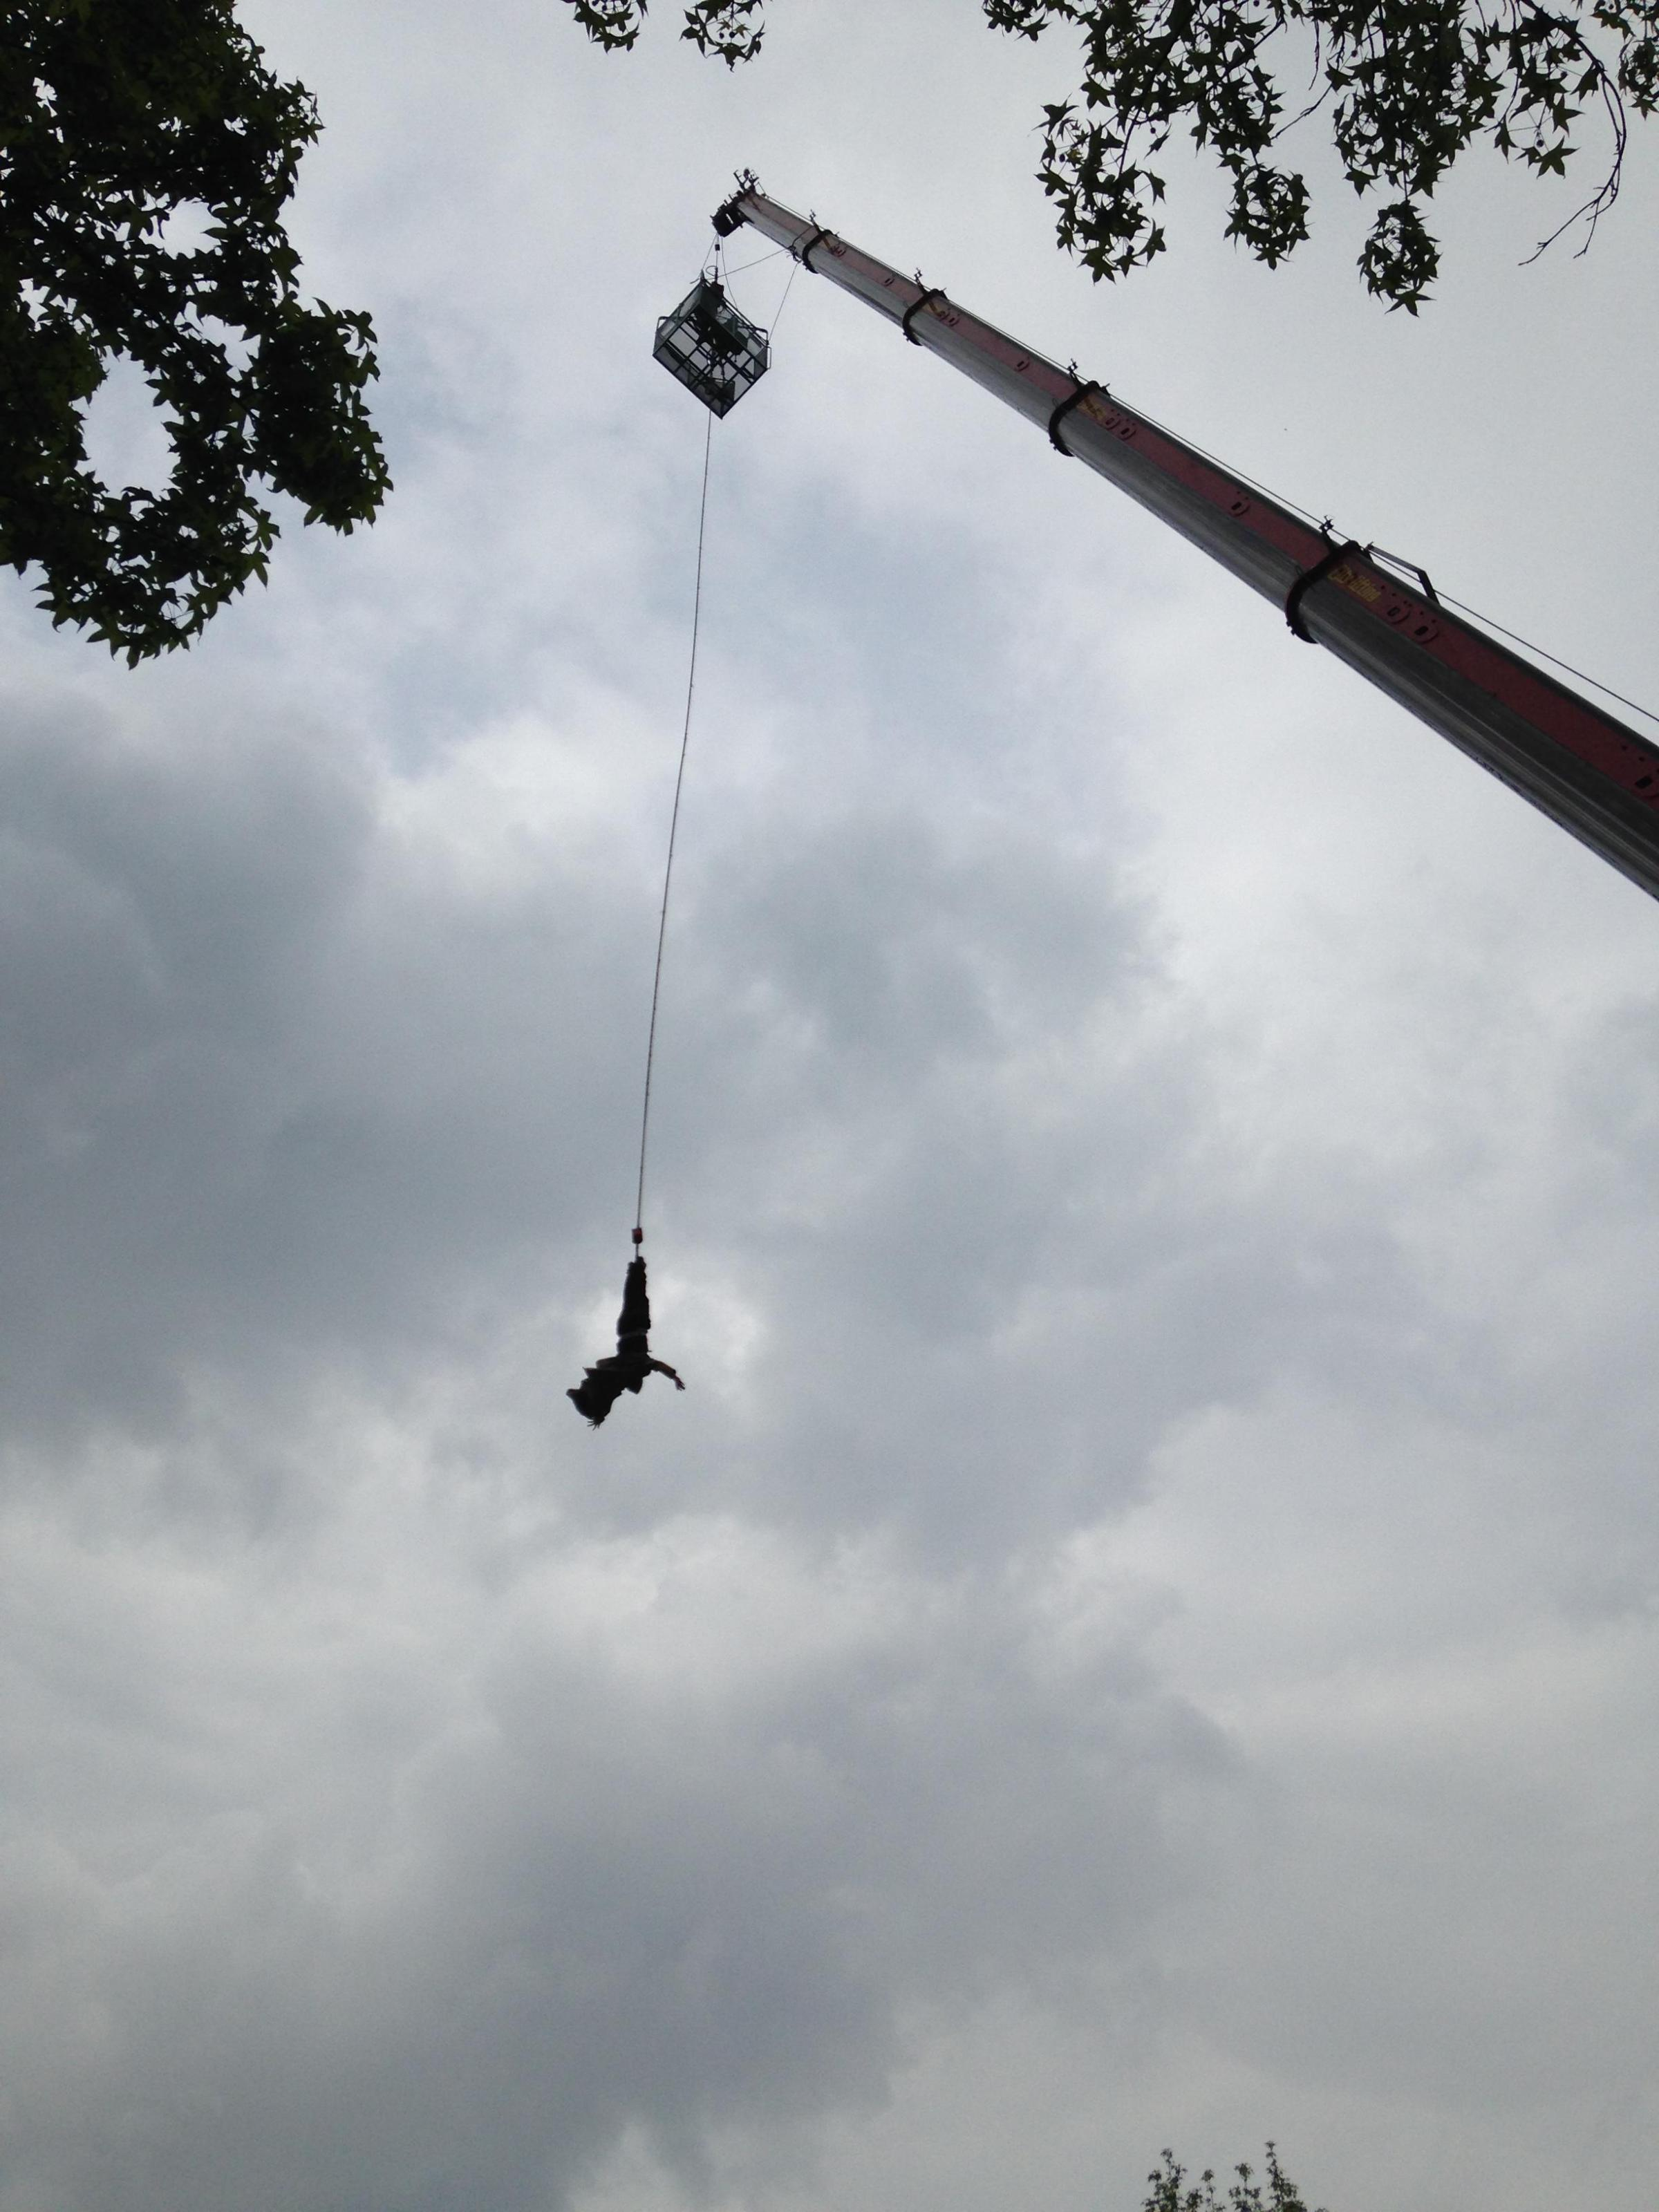 VIDEO: Bungee jumpers dive 175ft for charity event at Gloucester Green, Oxford